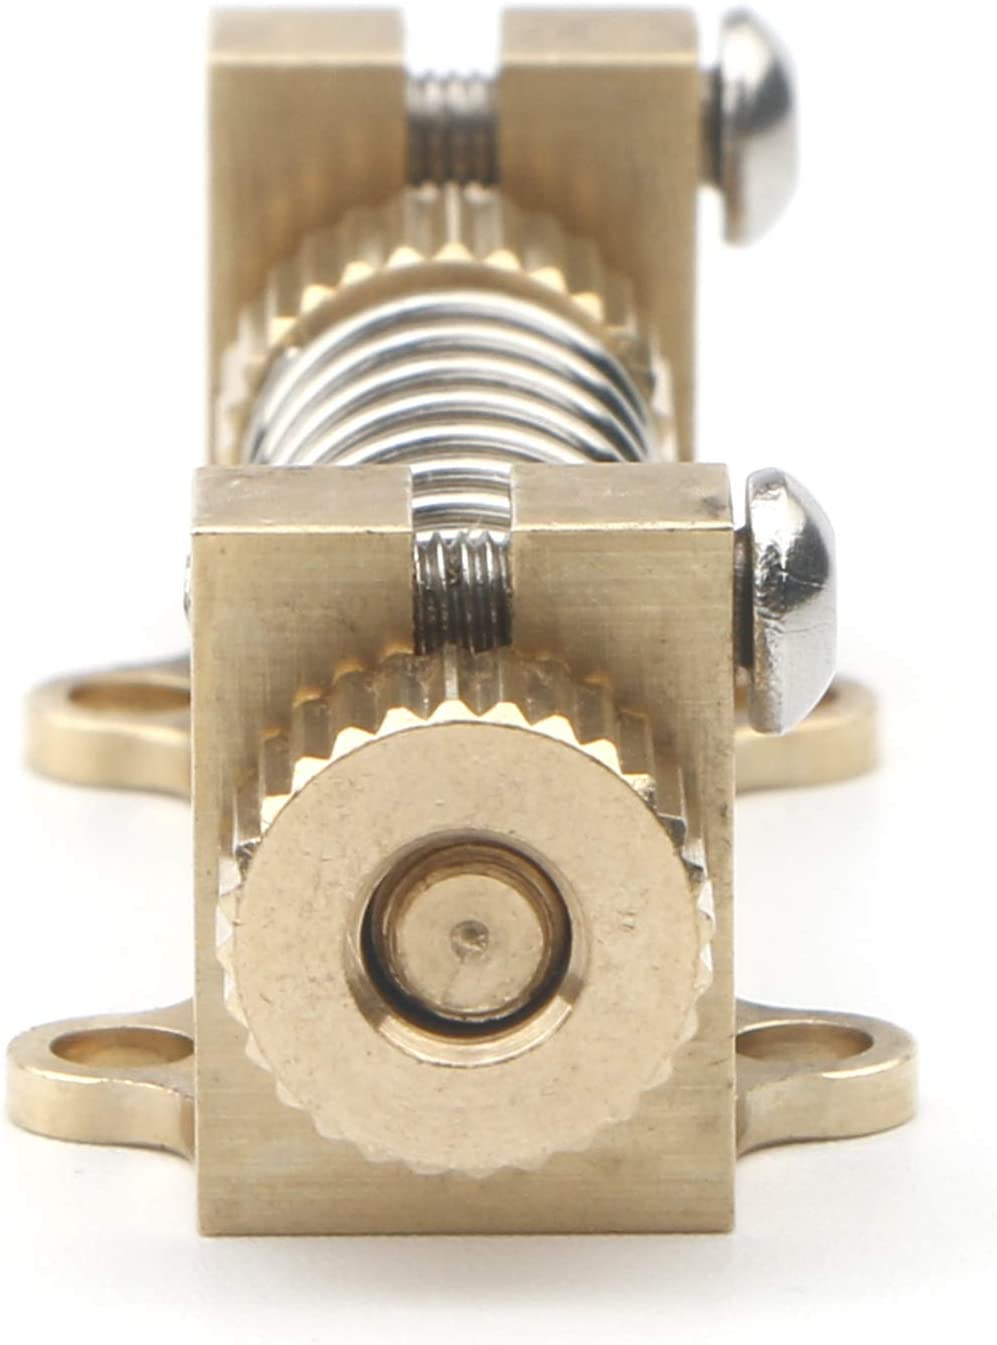 Unxuey Guitar Brass Tremolo Stabilizer Bridge System Spring Stopper DeviceElectric Guitar Parts Device Kit for Fender Electric Guitars Accessories